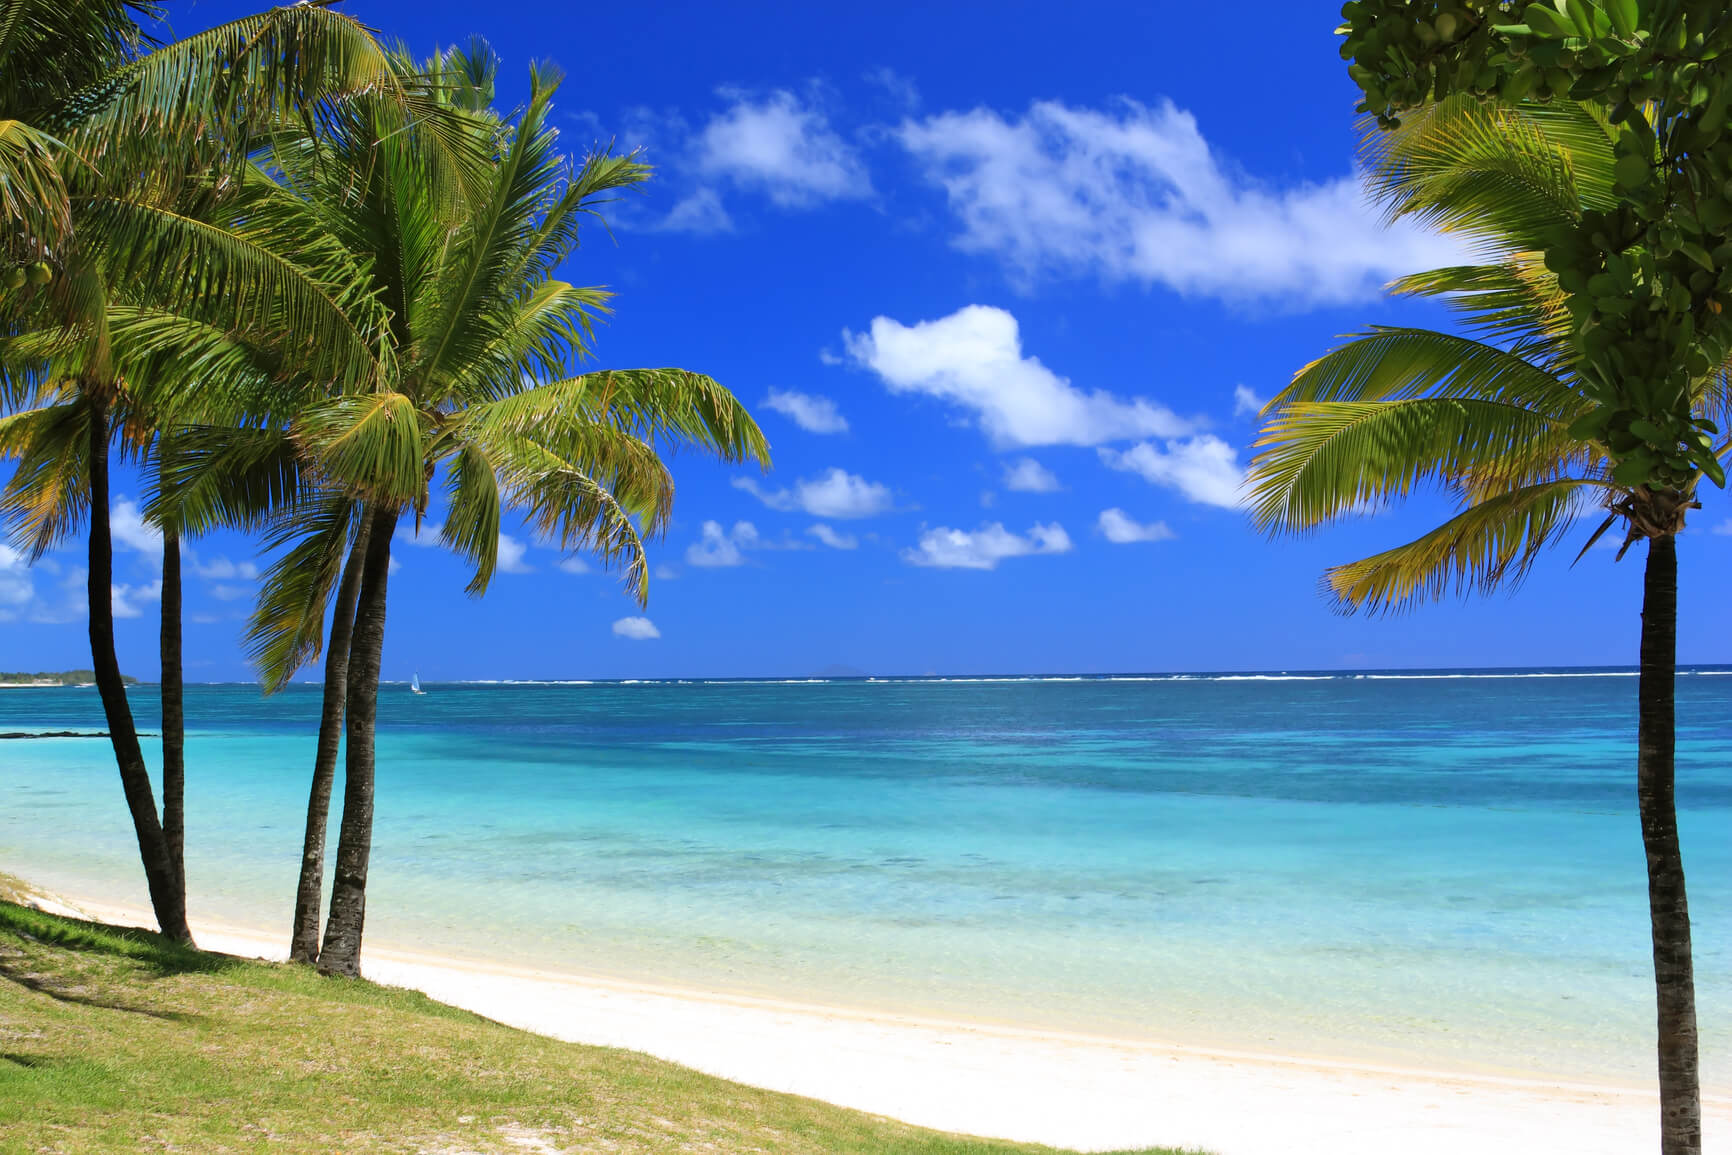 **PRICE DROP** Non-stop from Helsinki, Finland to Mauritius for only €235 roundtrip